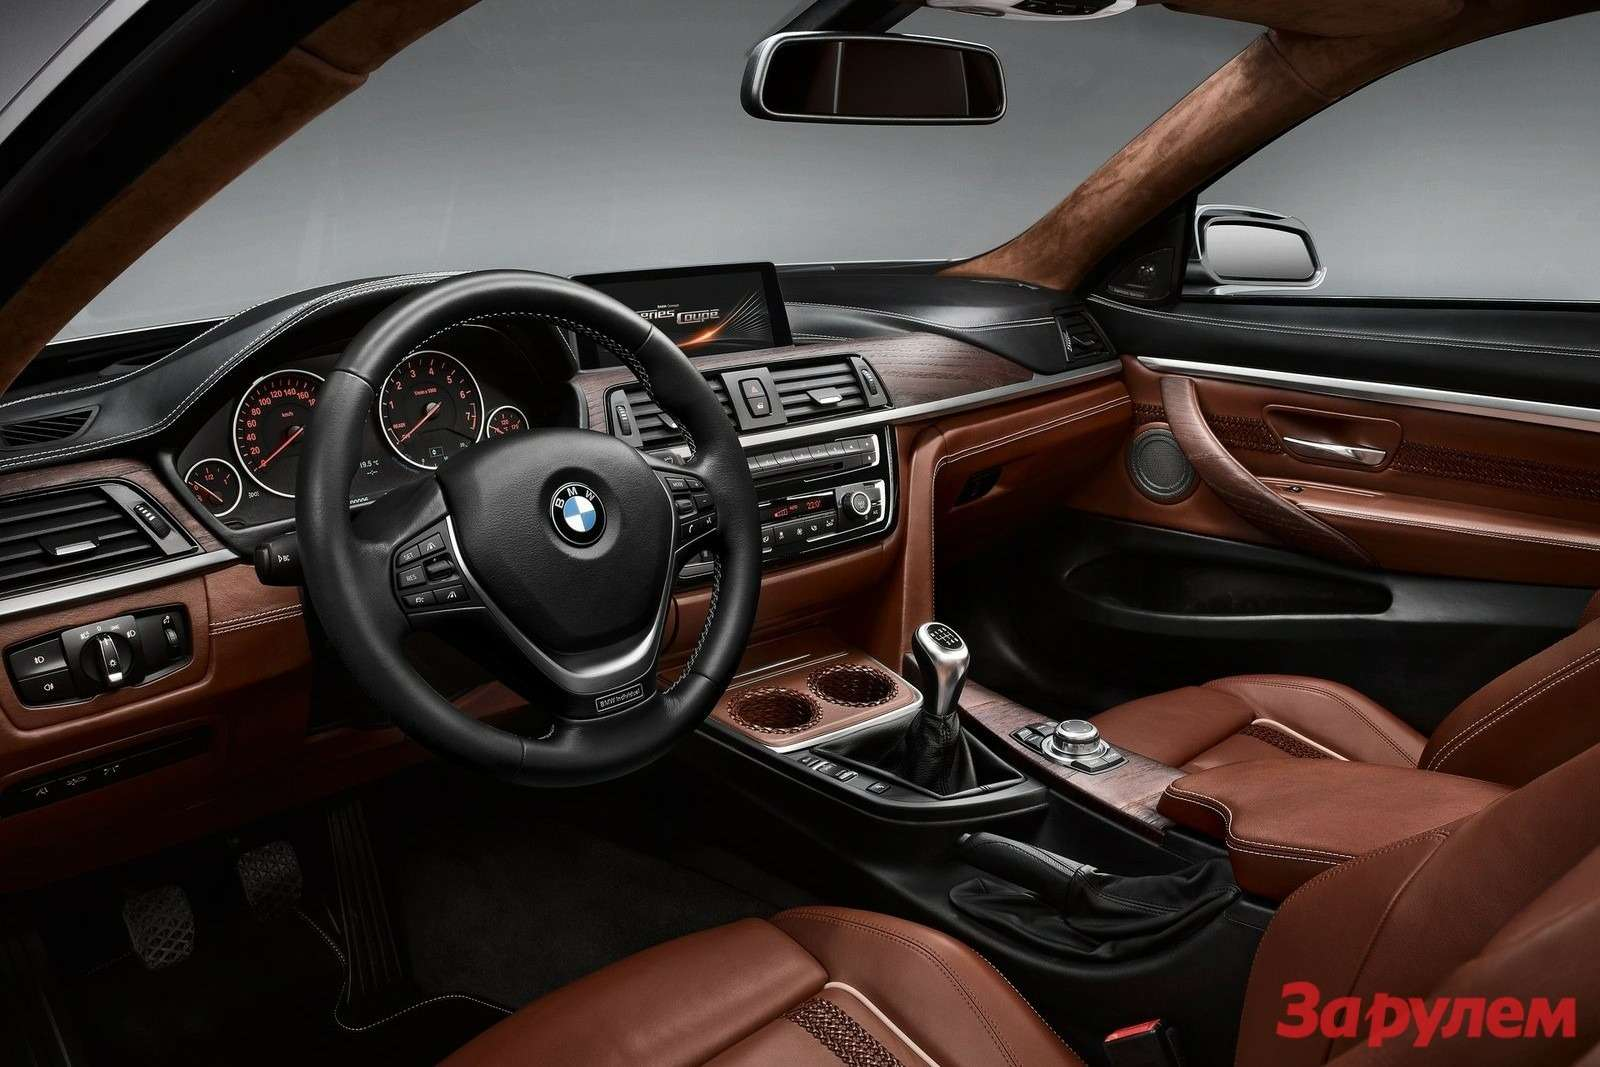 BMW-4-Series_Coupe_Concept_2013_1600x1200_wallpaper_22